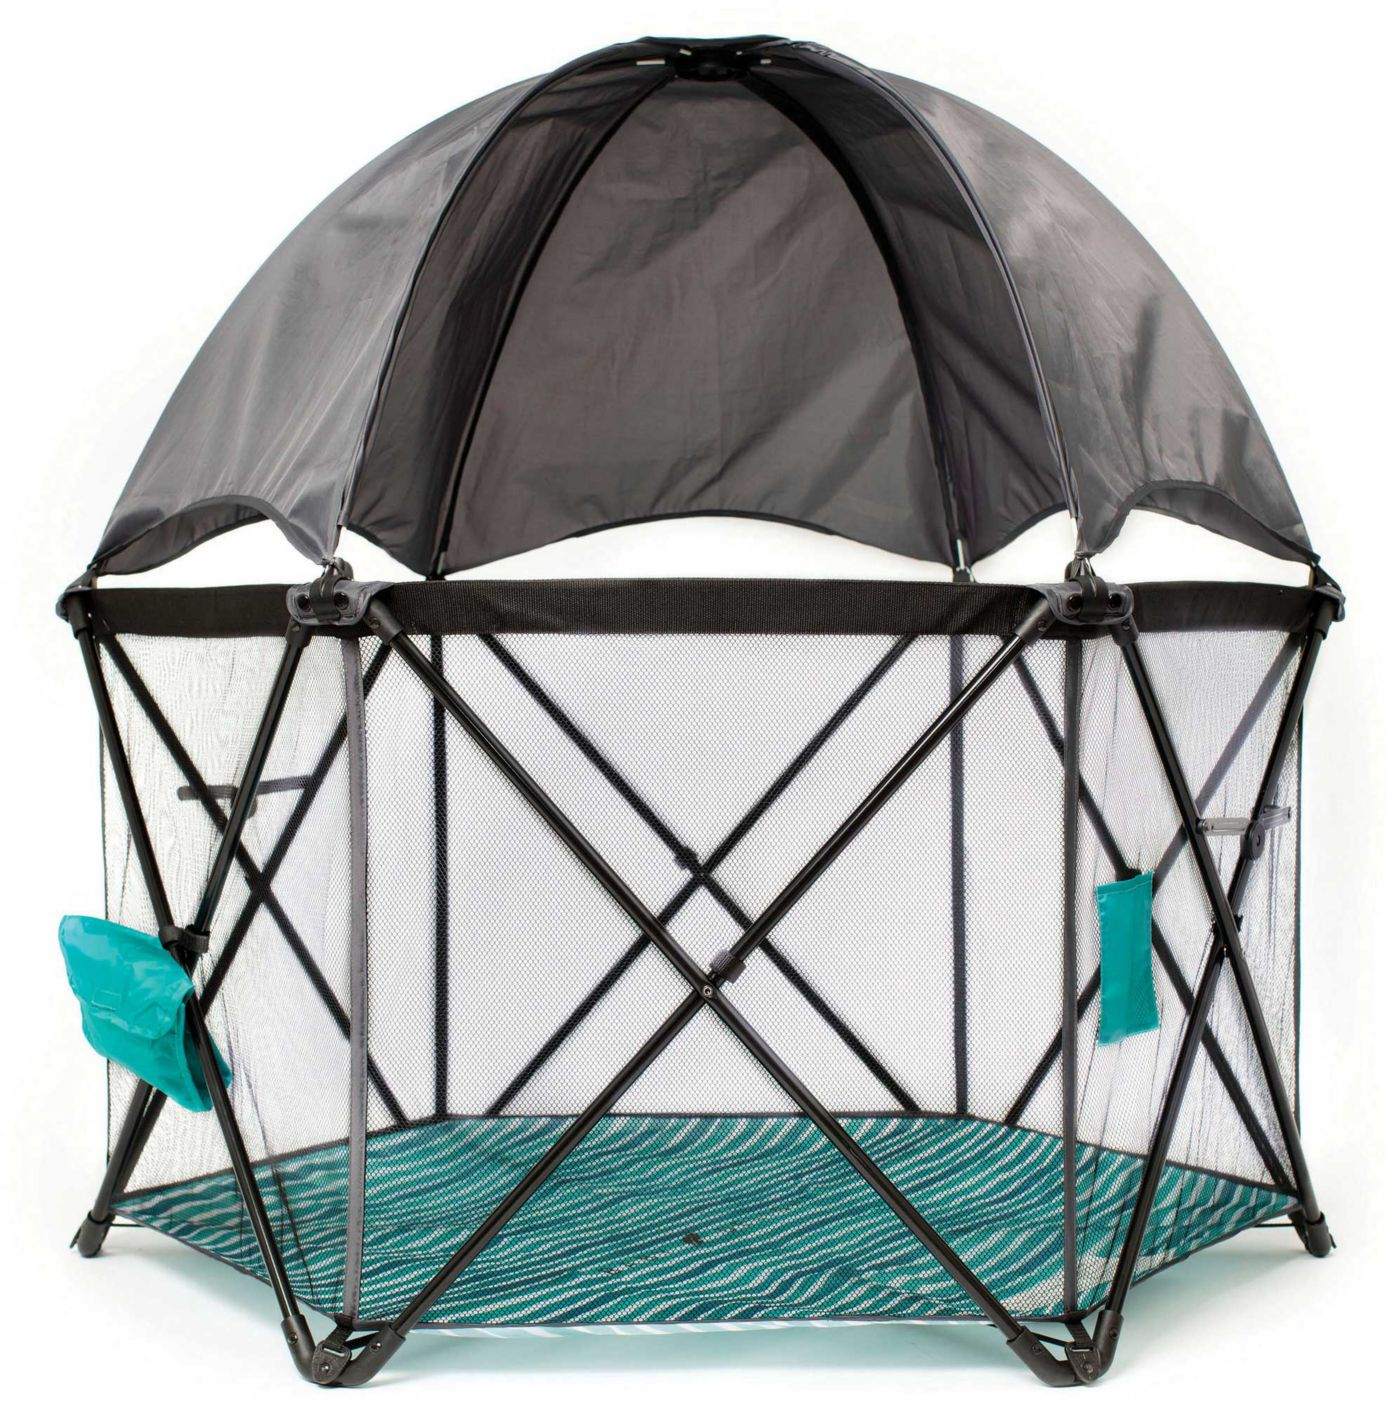 Baby Delight Go With Me Eclipse Playard with Canopy